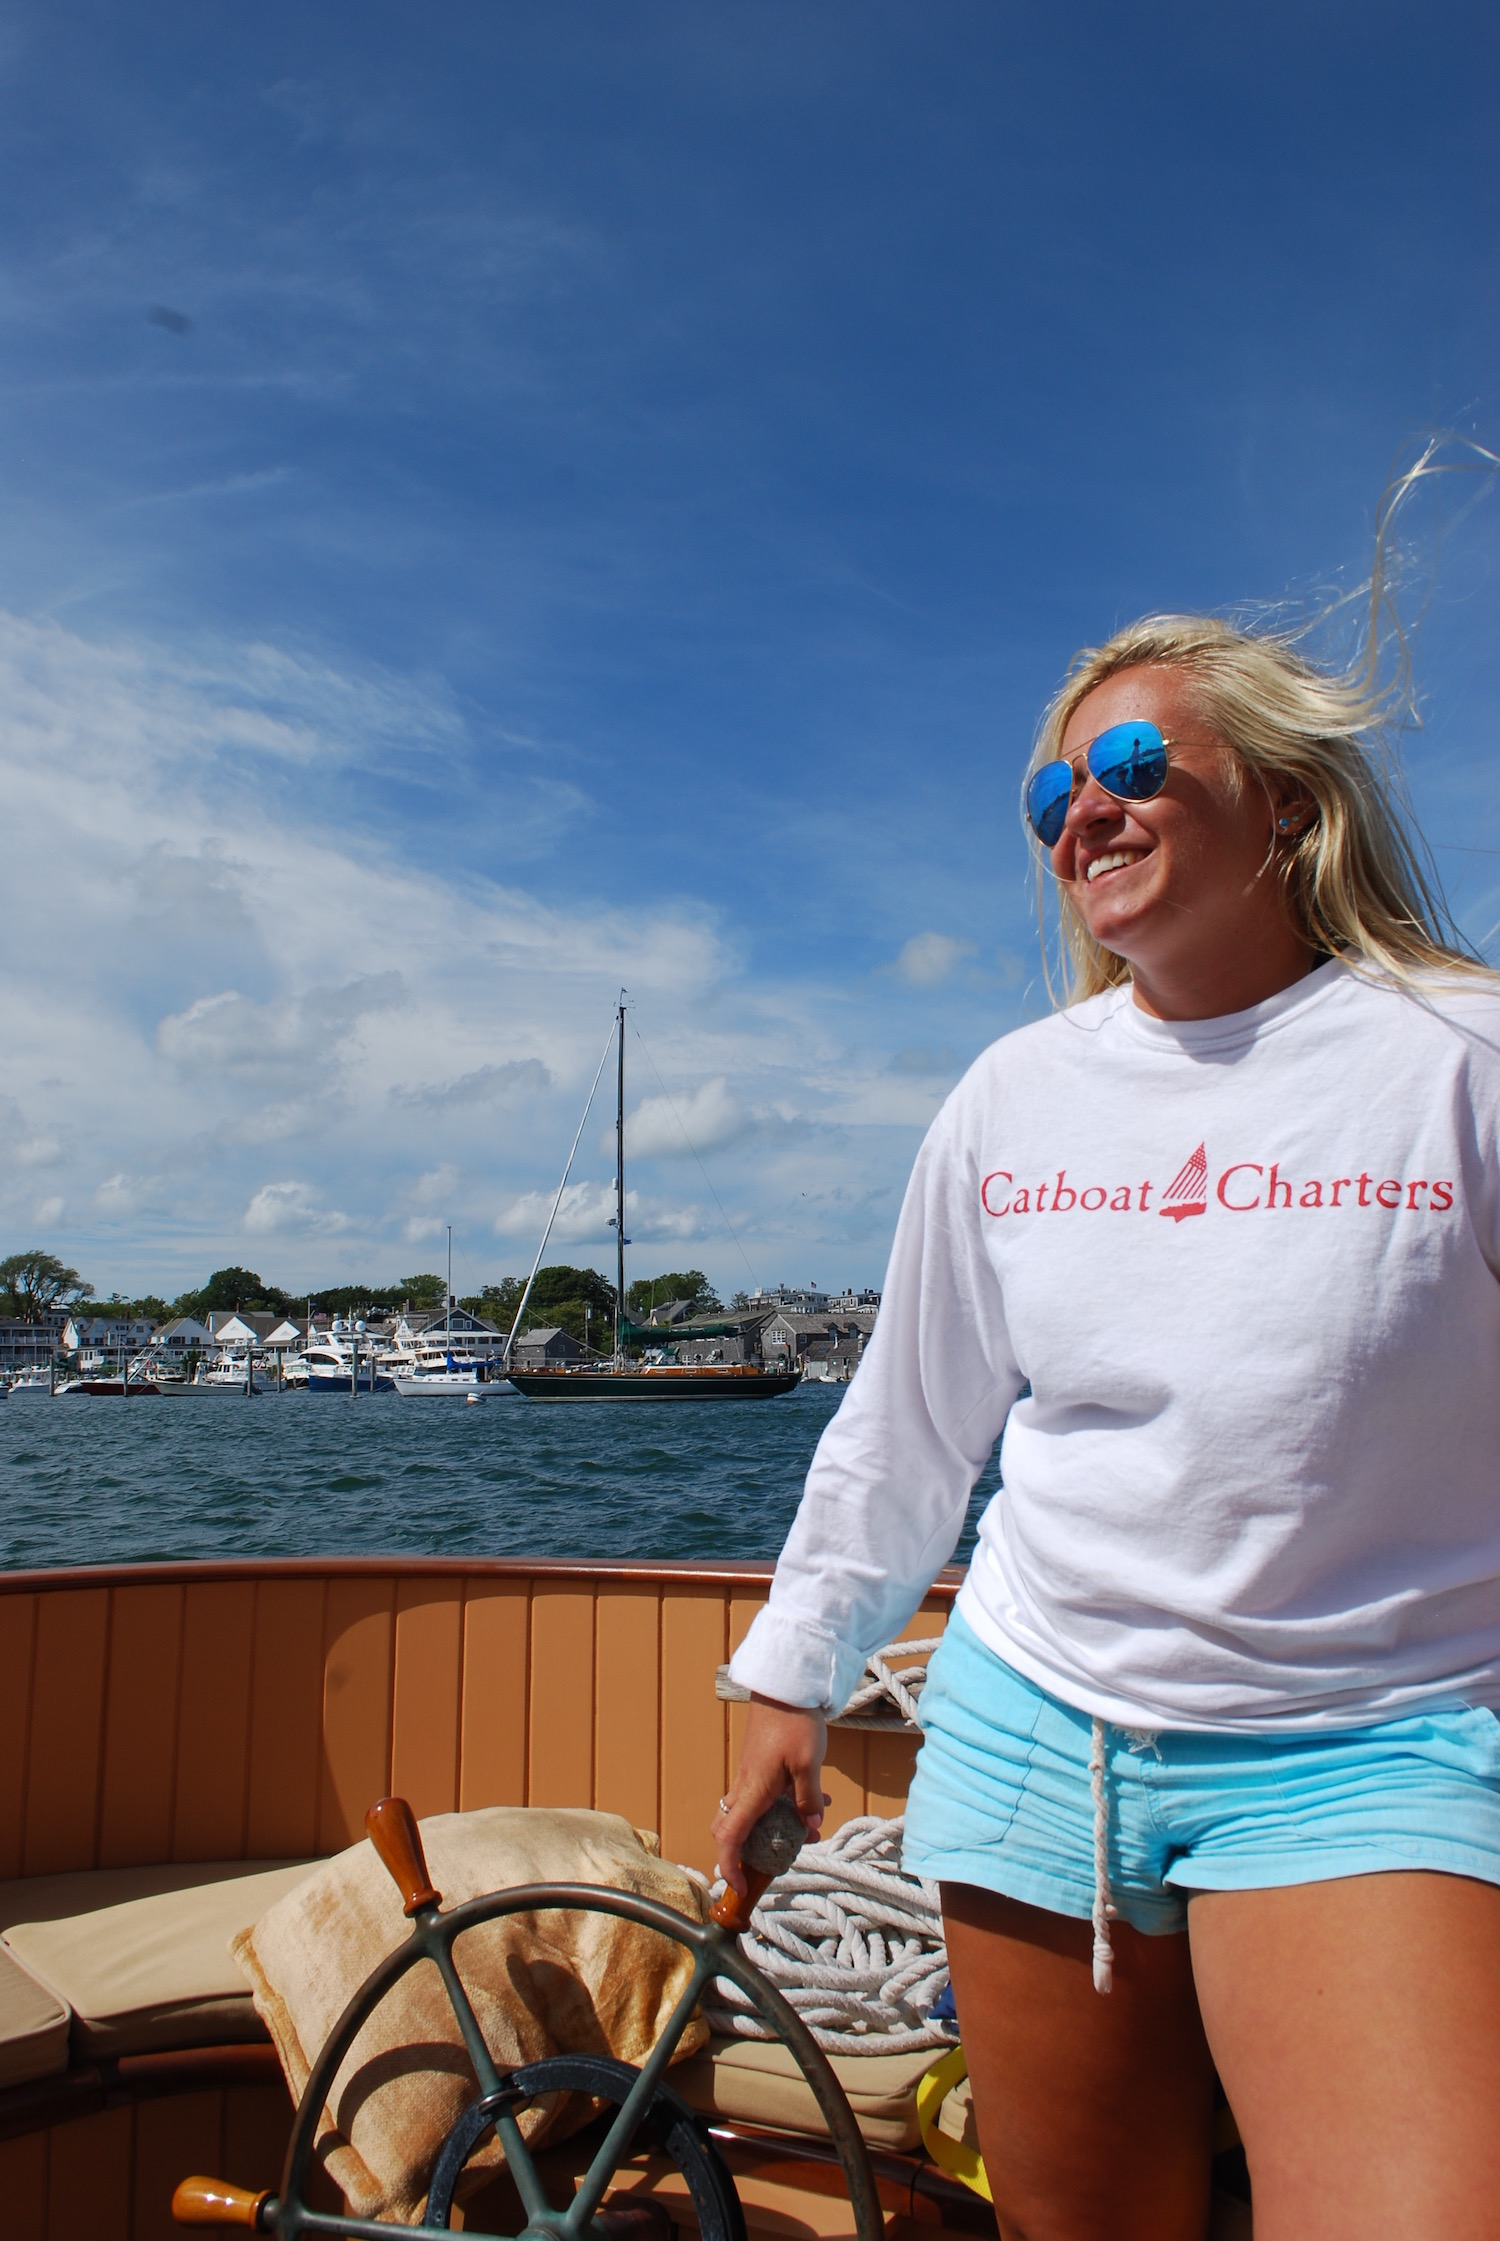 First Mate, Jessica, assisted in manning the ship and made sure our sail was perfect and our glasses were filled.